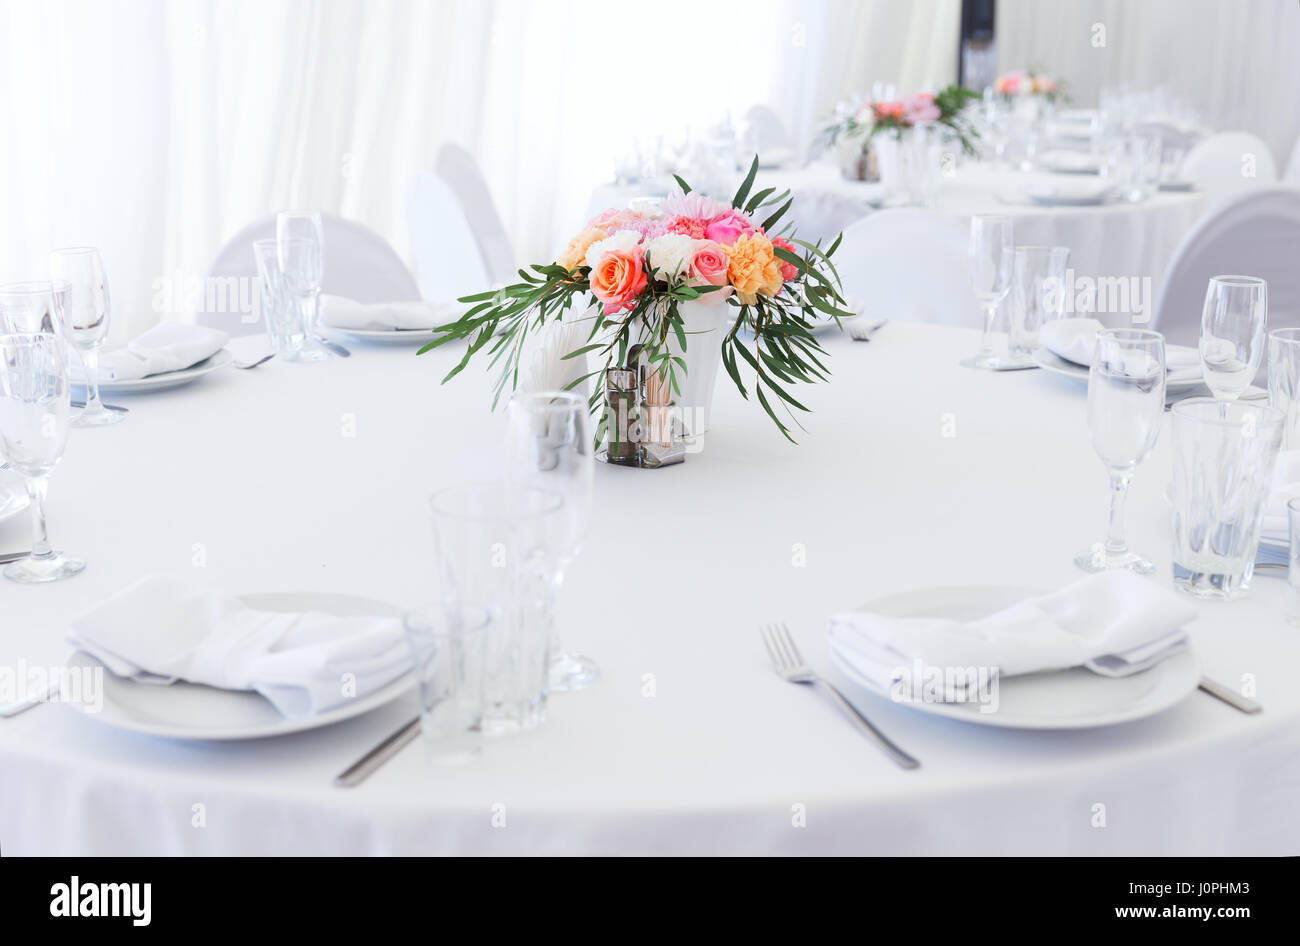 Served White Wedding Table Layout With Flowers Stock Photo